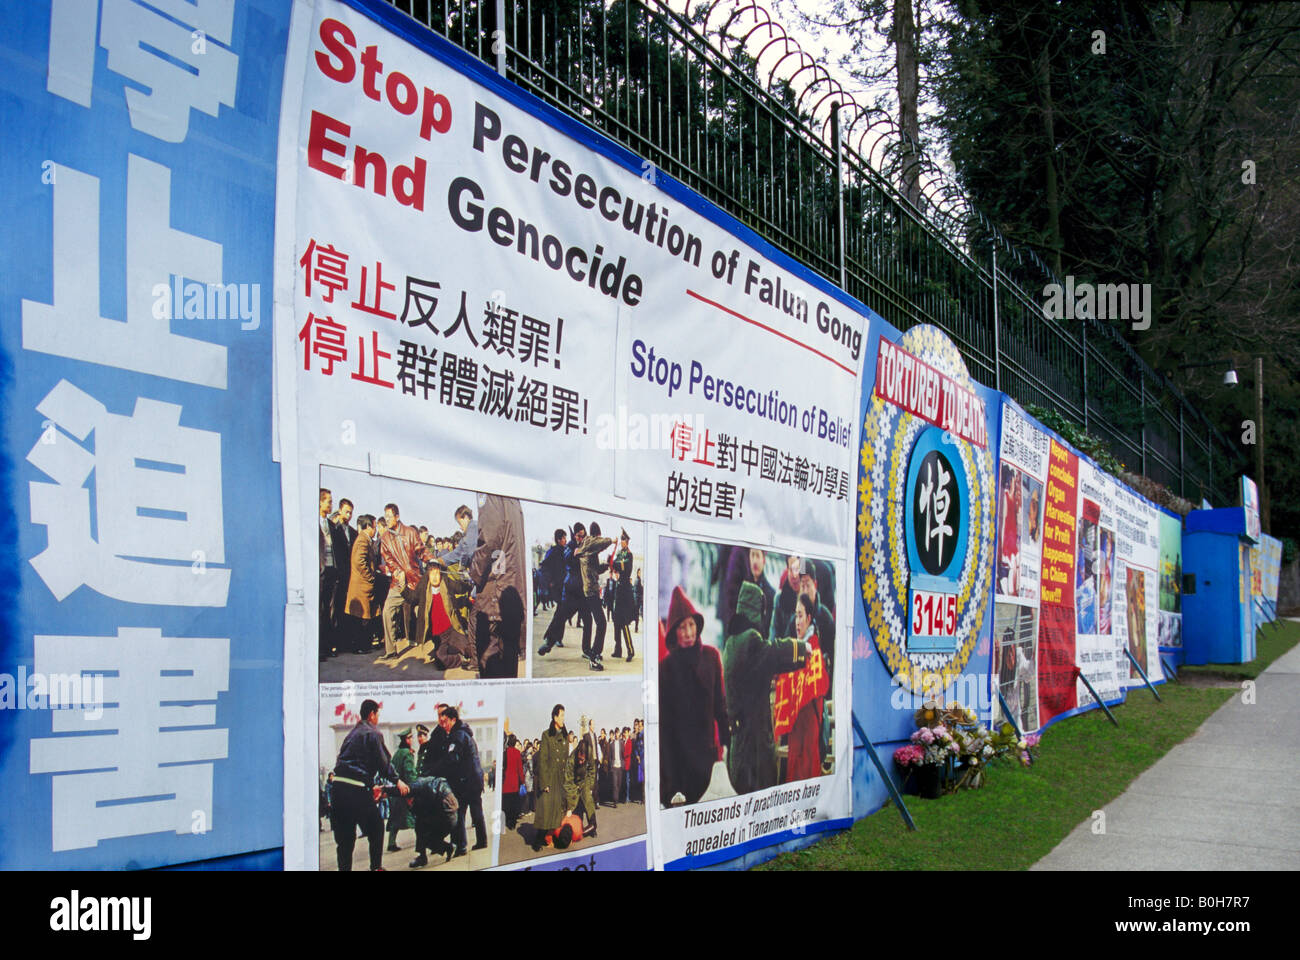 Falun Gong Protest Sign against Persecution and Genocide posted at Chinese Consulate, Vancouver - Human Rights Issues - Stock Image